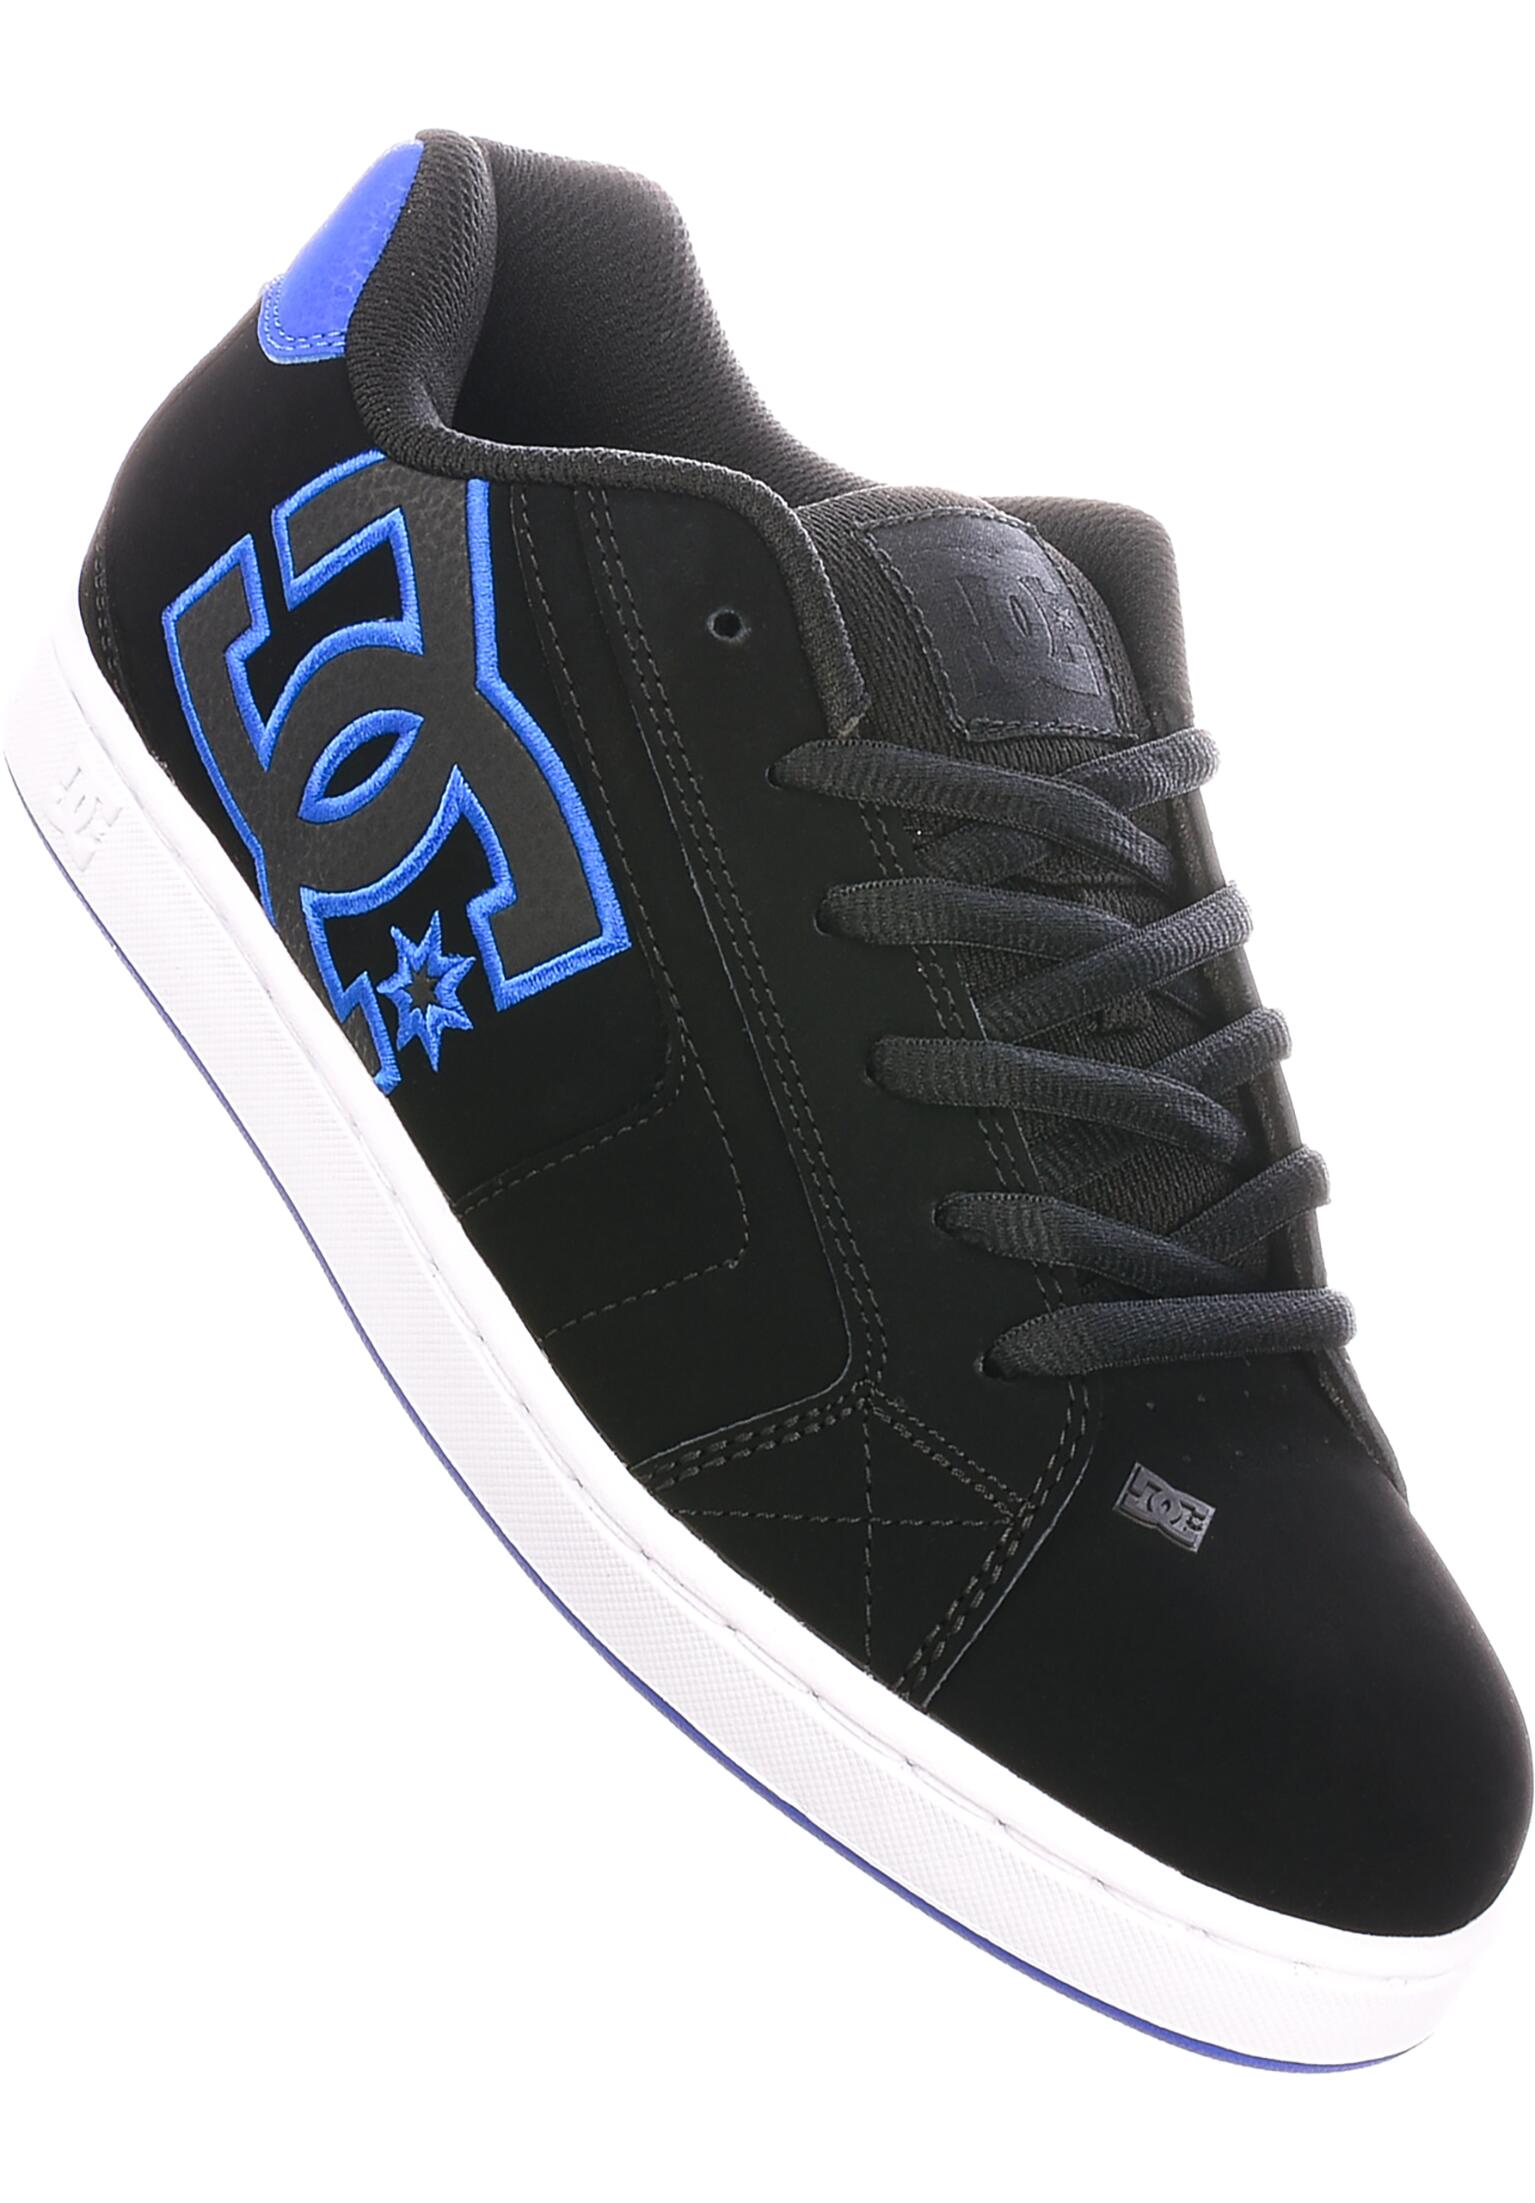 Net DC Shoes All Shoes in black-royal